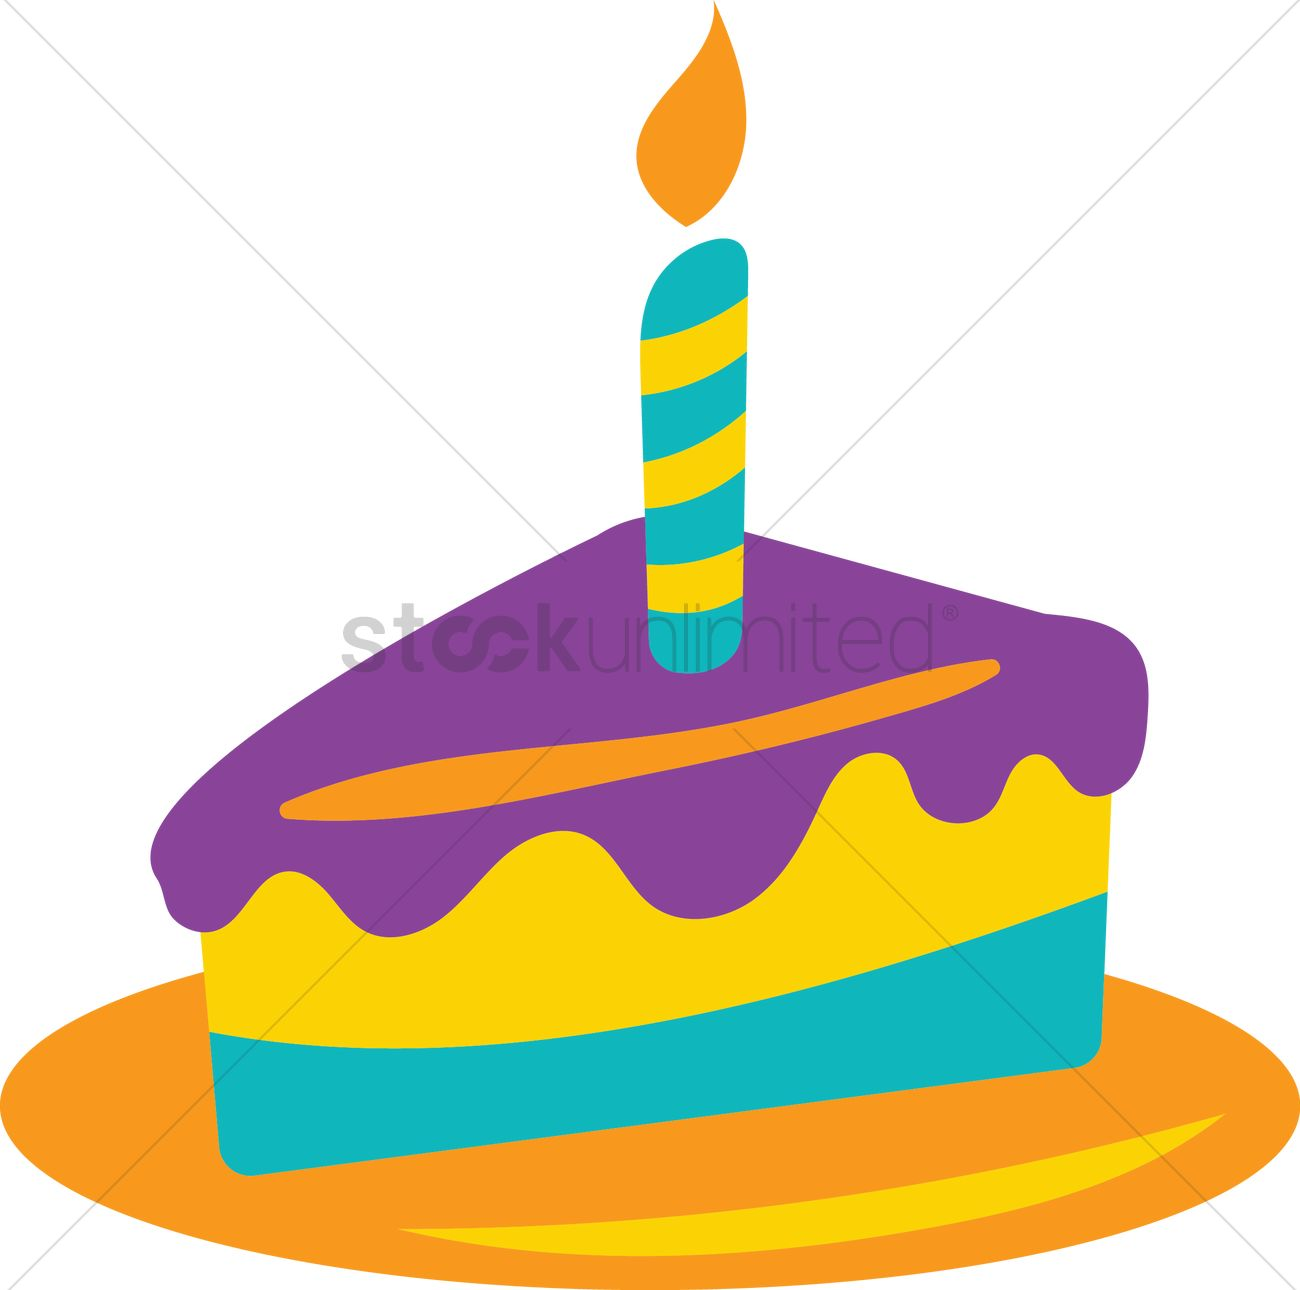 hight resolution of birthday cake slice vector graphic